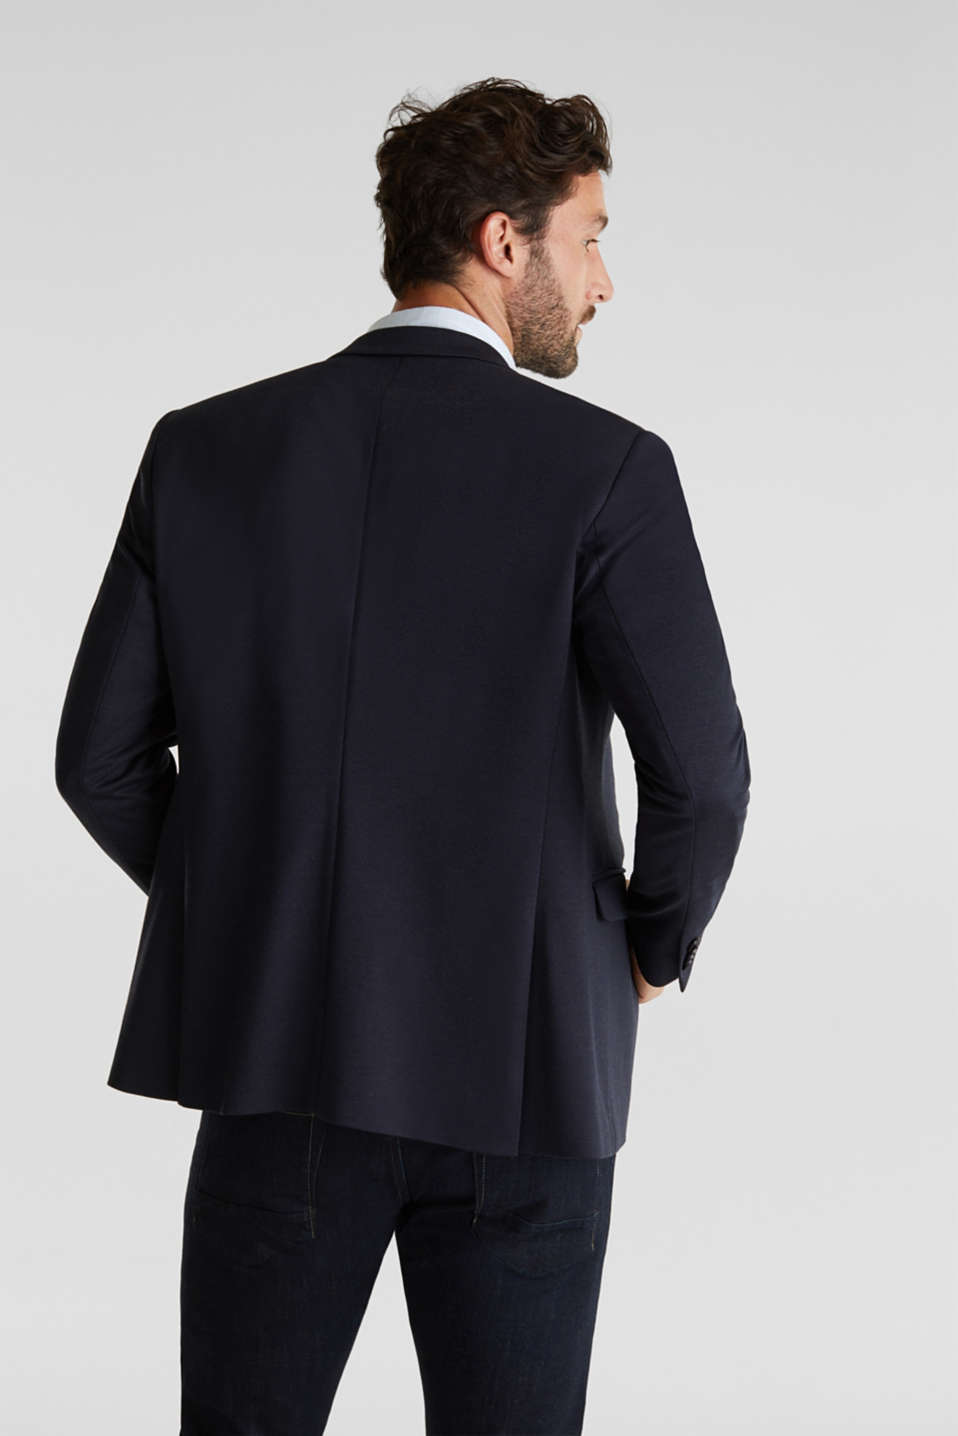 JOGG SUIT mix + match: sports jacket, DARK BLUE 5, detail image number 3